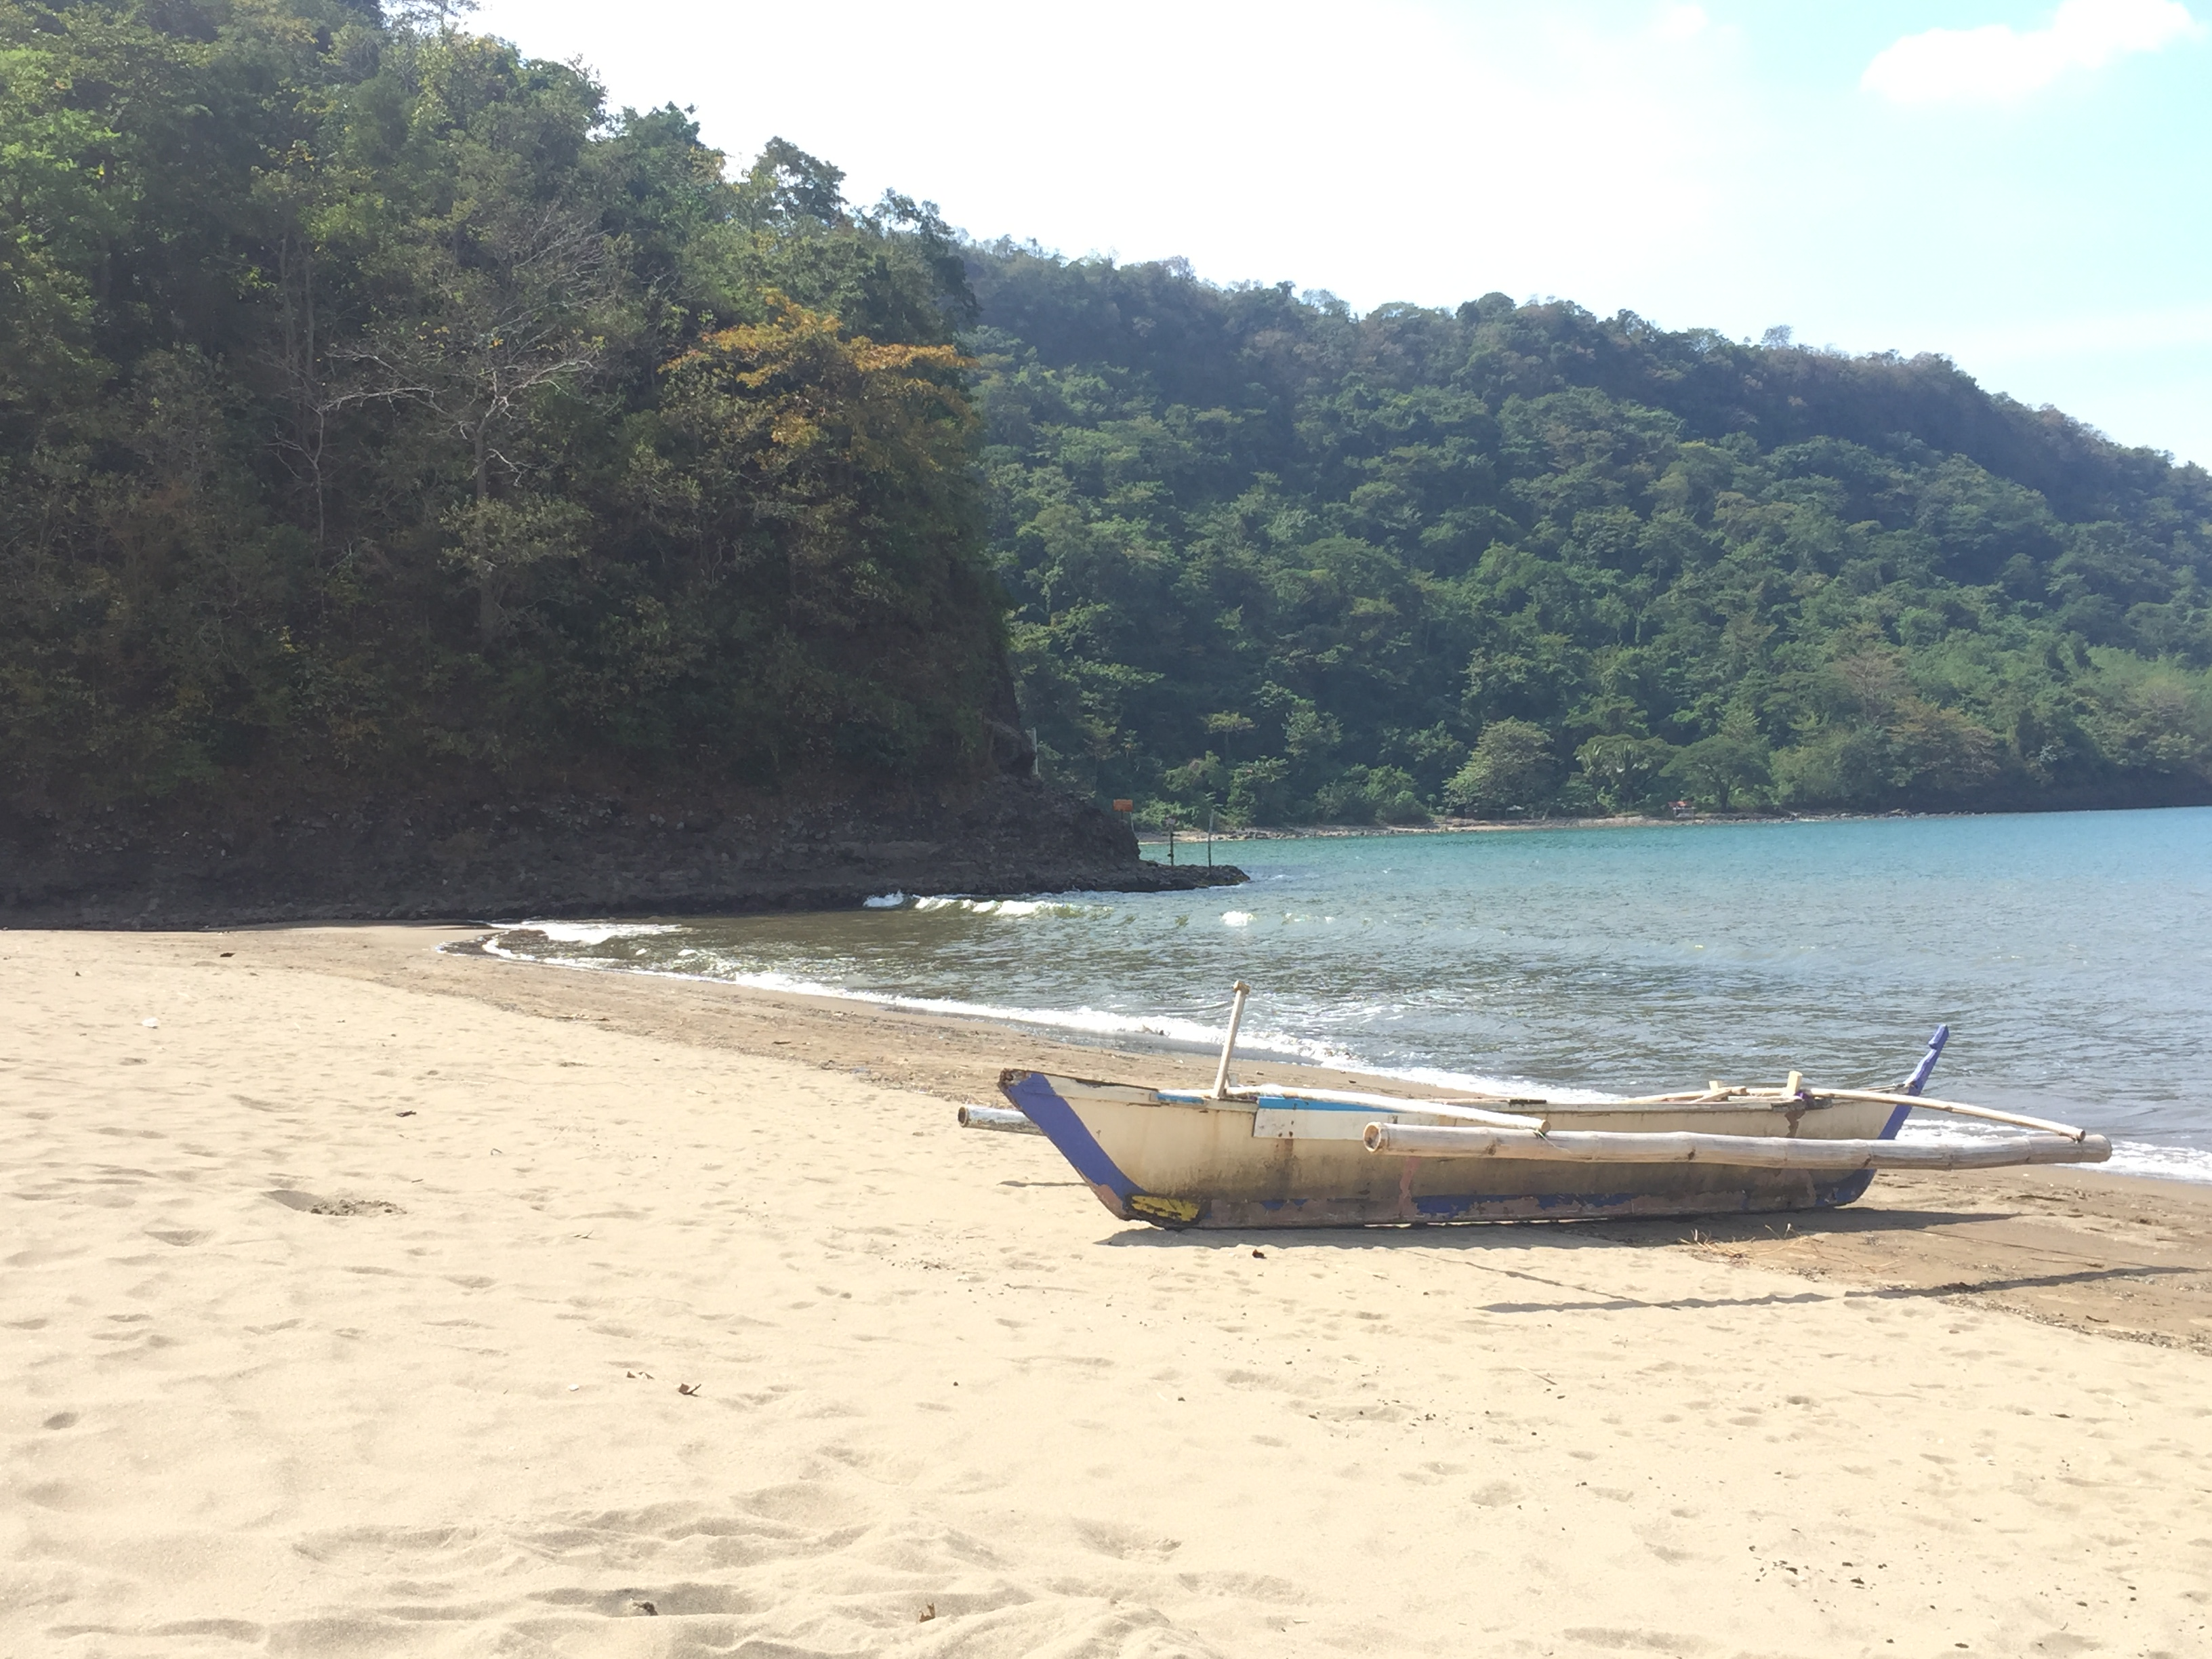 weekend getaway close to Manila calayo beach batangas